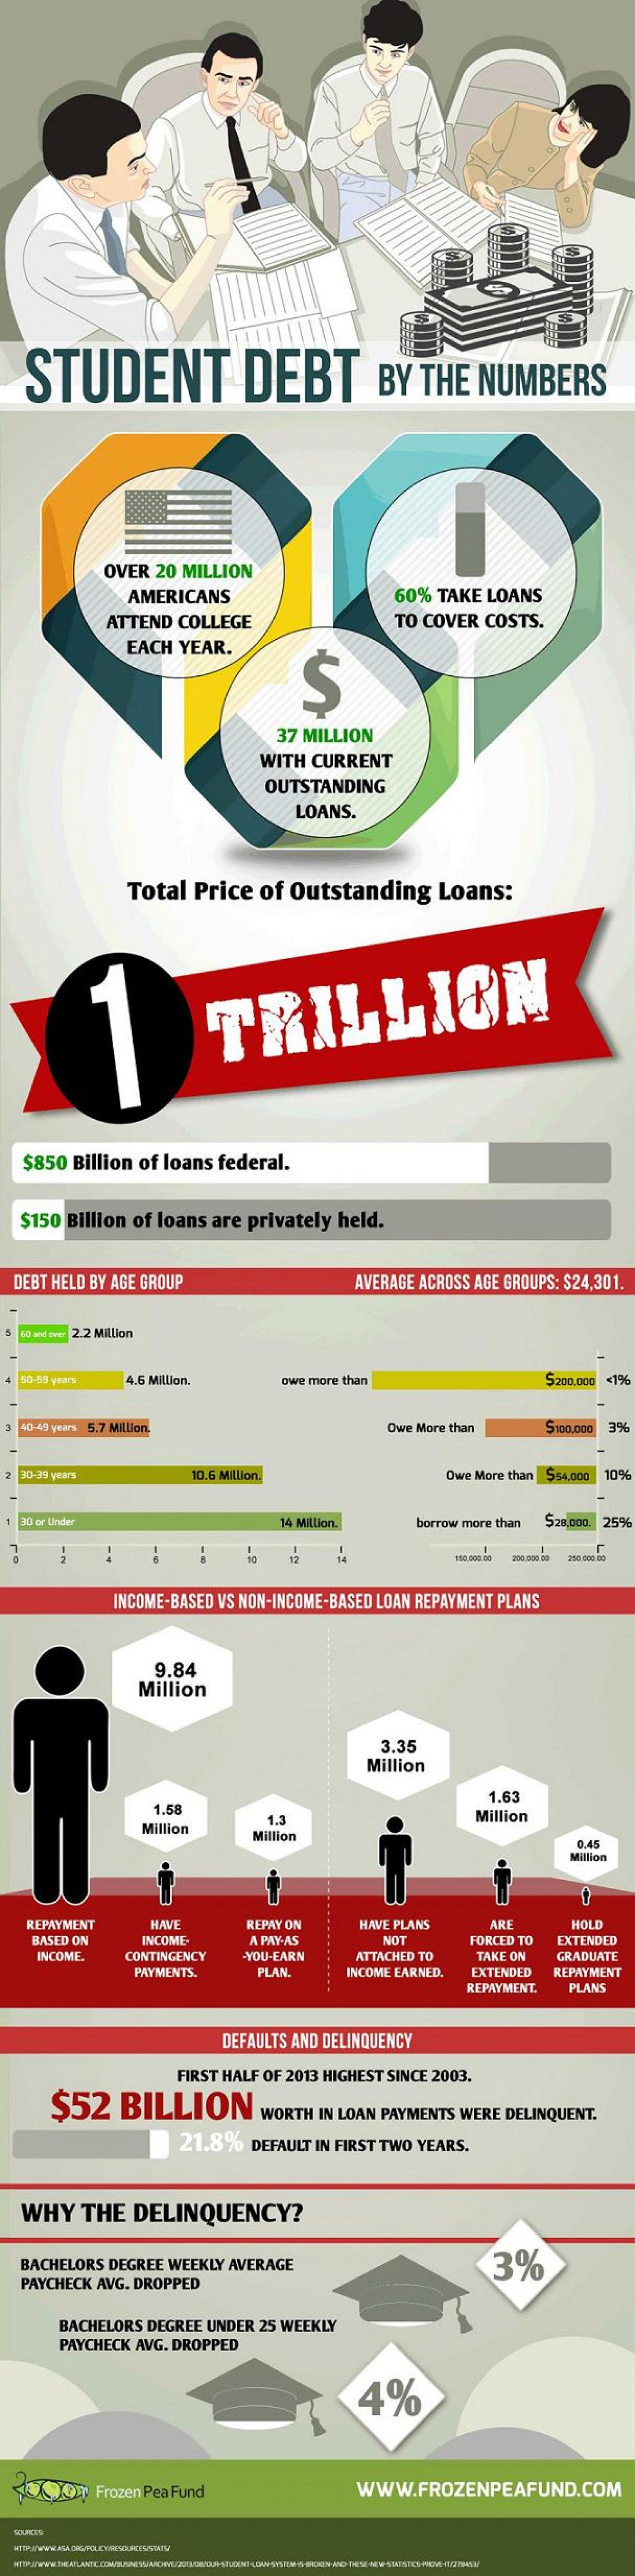 Student Debt By the Numbers Infographic